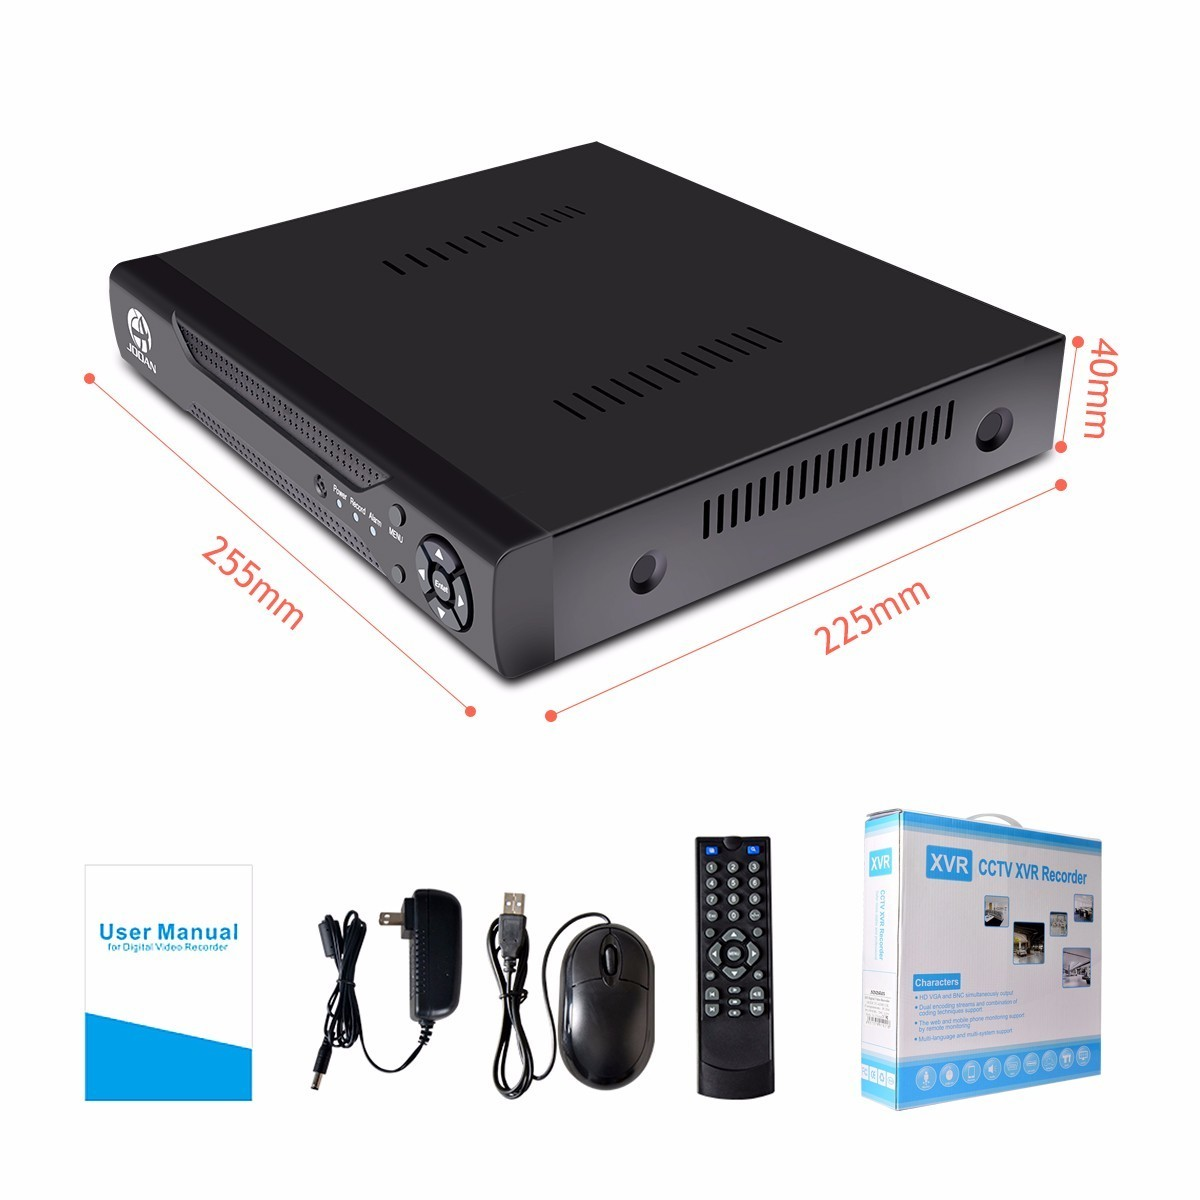 h 264 digital video recorder manual how to troubleshooting rh overdueindustries com H 264 DVR Internet Setup H 264 DVR Internet Setup